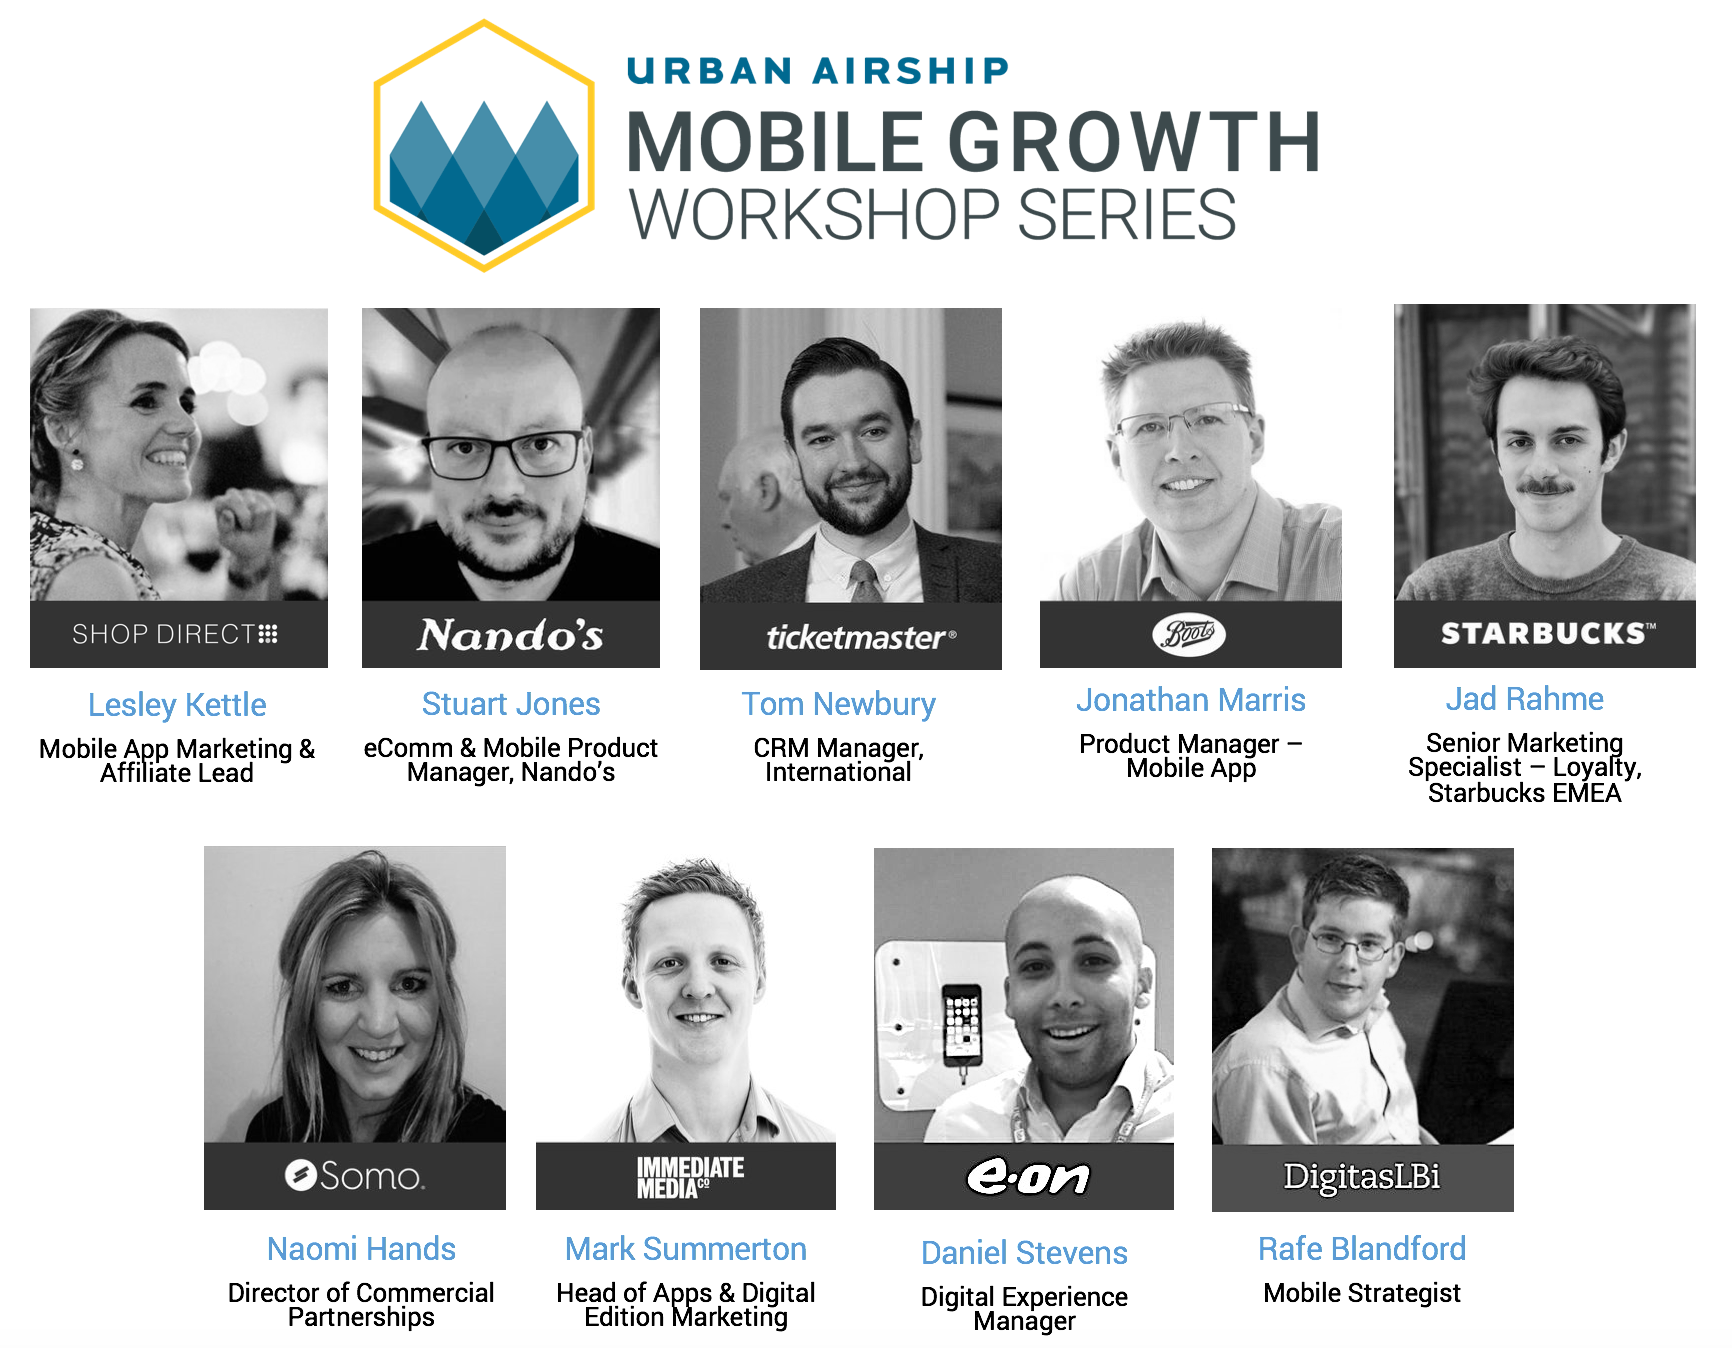 mobile-strategy-experts-at-urban-airship-mobile-growth-workshop-london